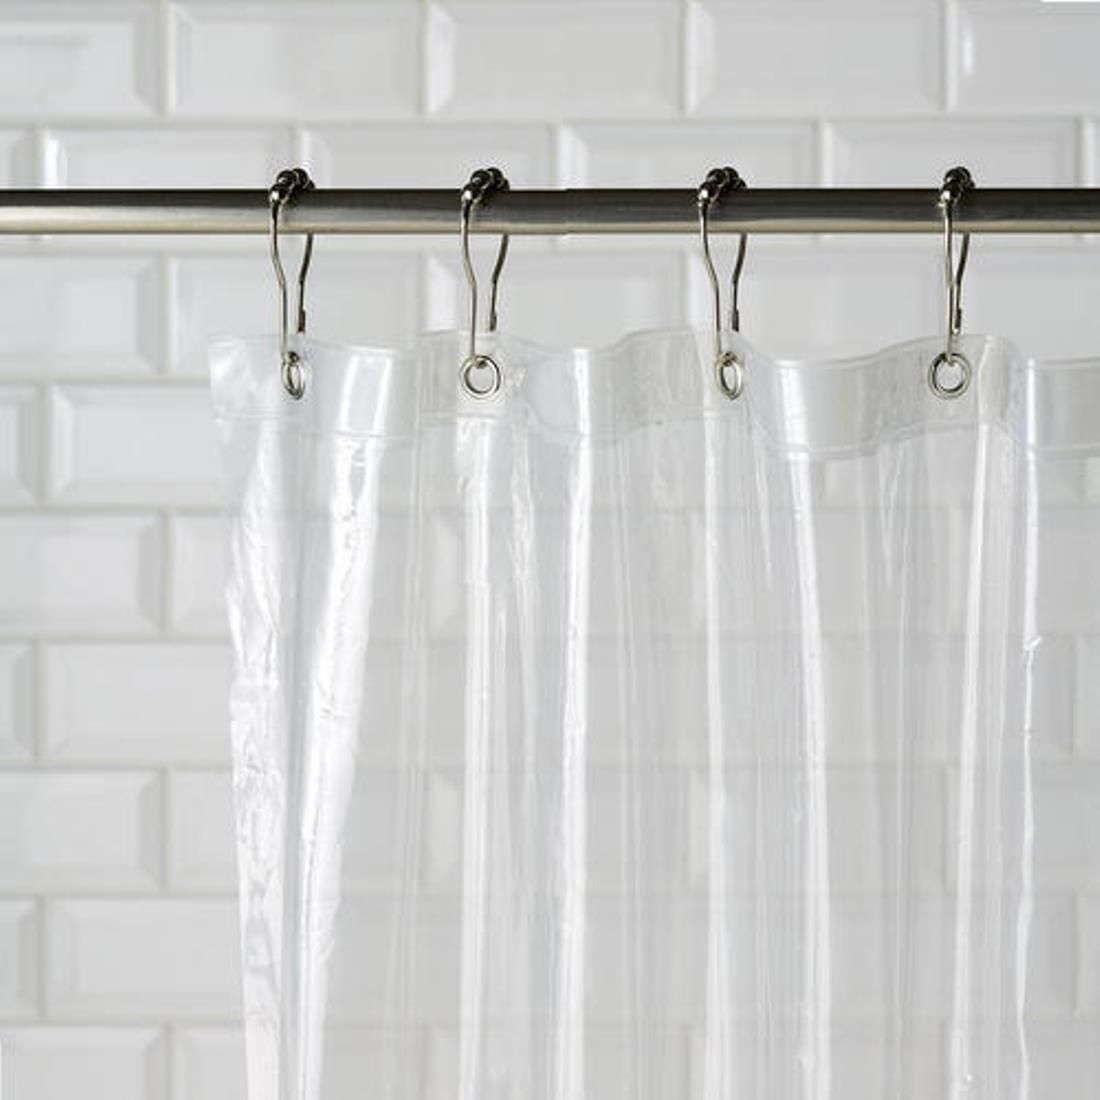 Kuber Industries Designer 0 20mm Pvc Ac Transparent Curtain Width 54 Inches X Height 108 Inches 9 Feet Accur019 The results are the total of the feet and inches entered, converted into meters. inr